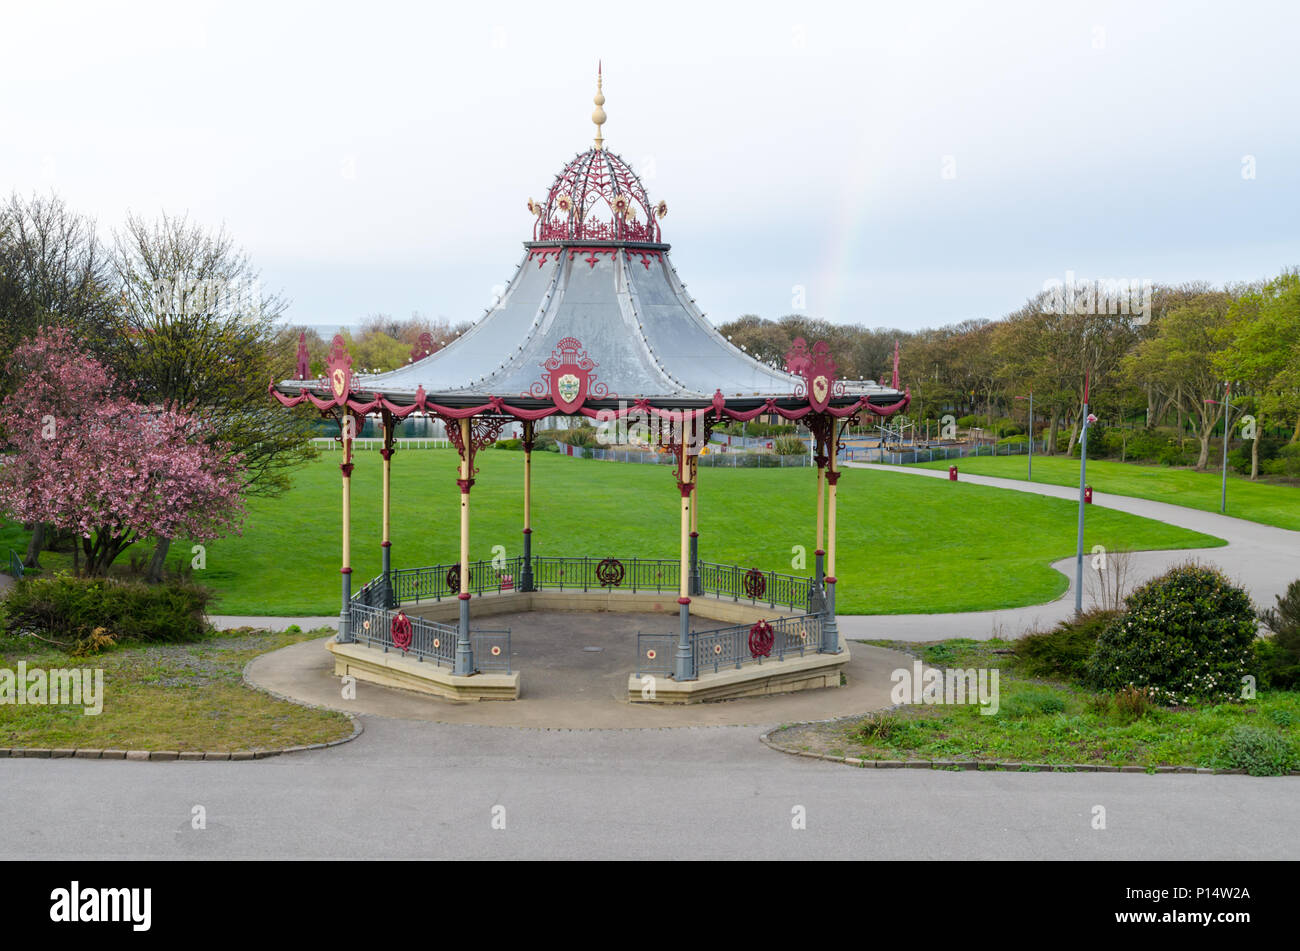 The Bandstand at South Marine Park, South Shields - Stock Image